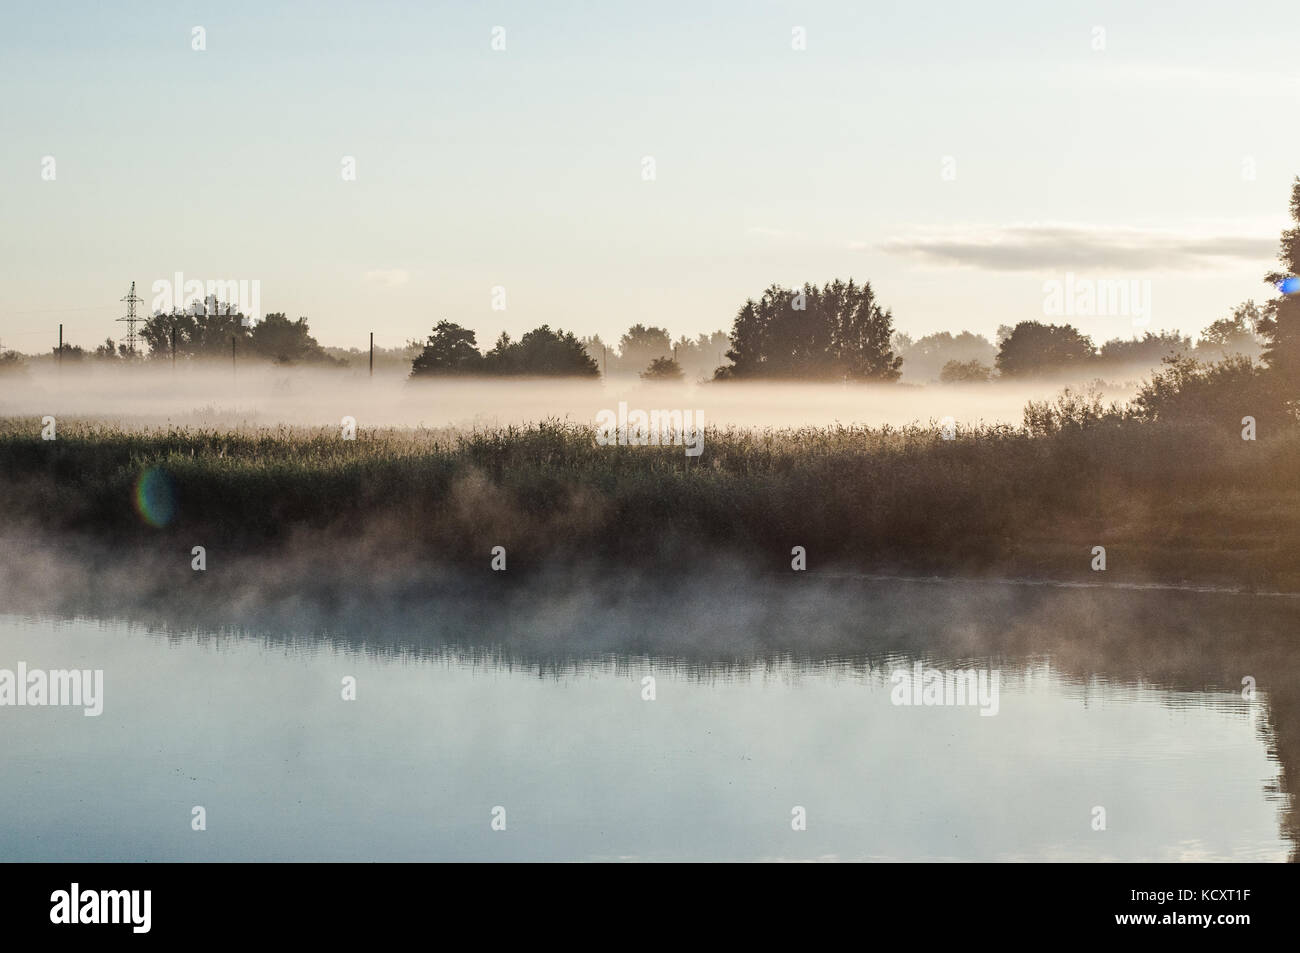 Fog covered grass field  near the lake. Dreamy reflections on a ponds surface. - Stock Image